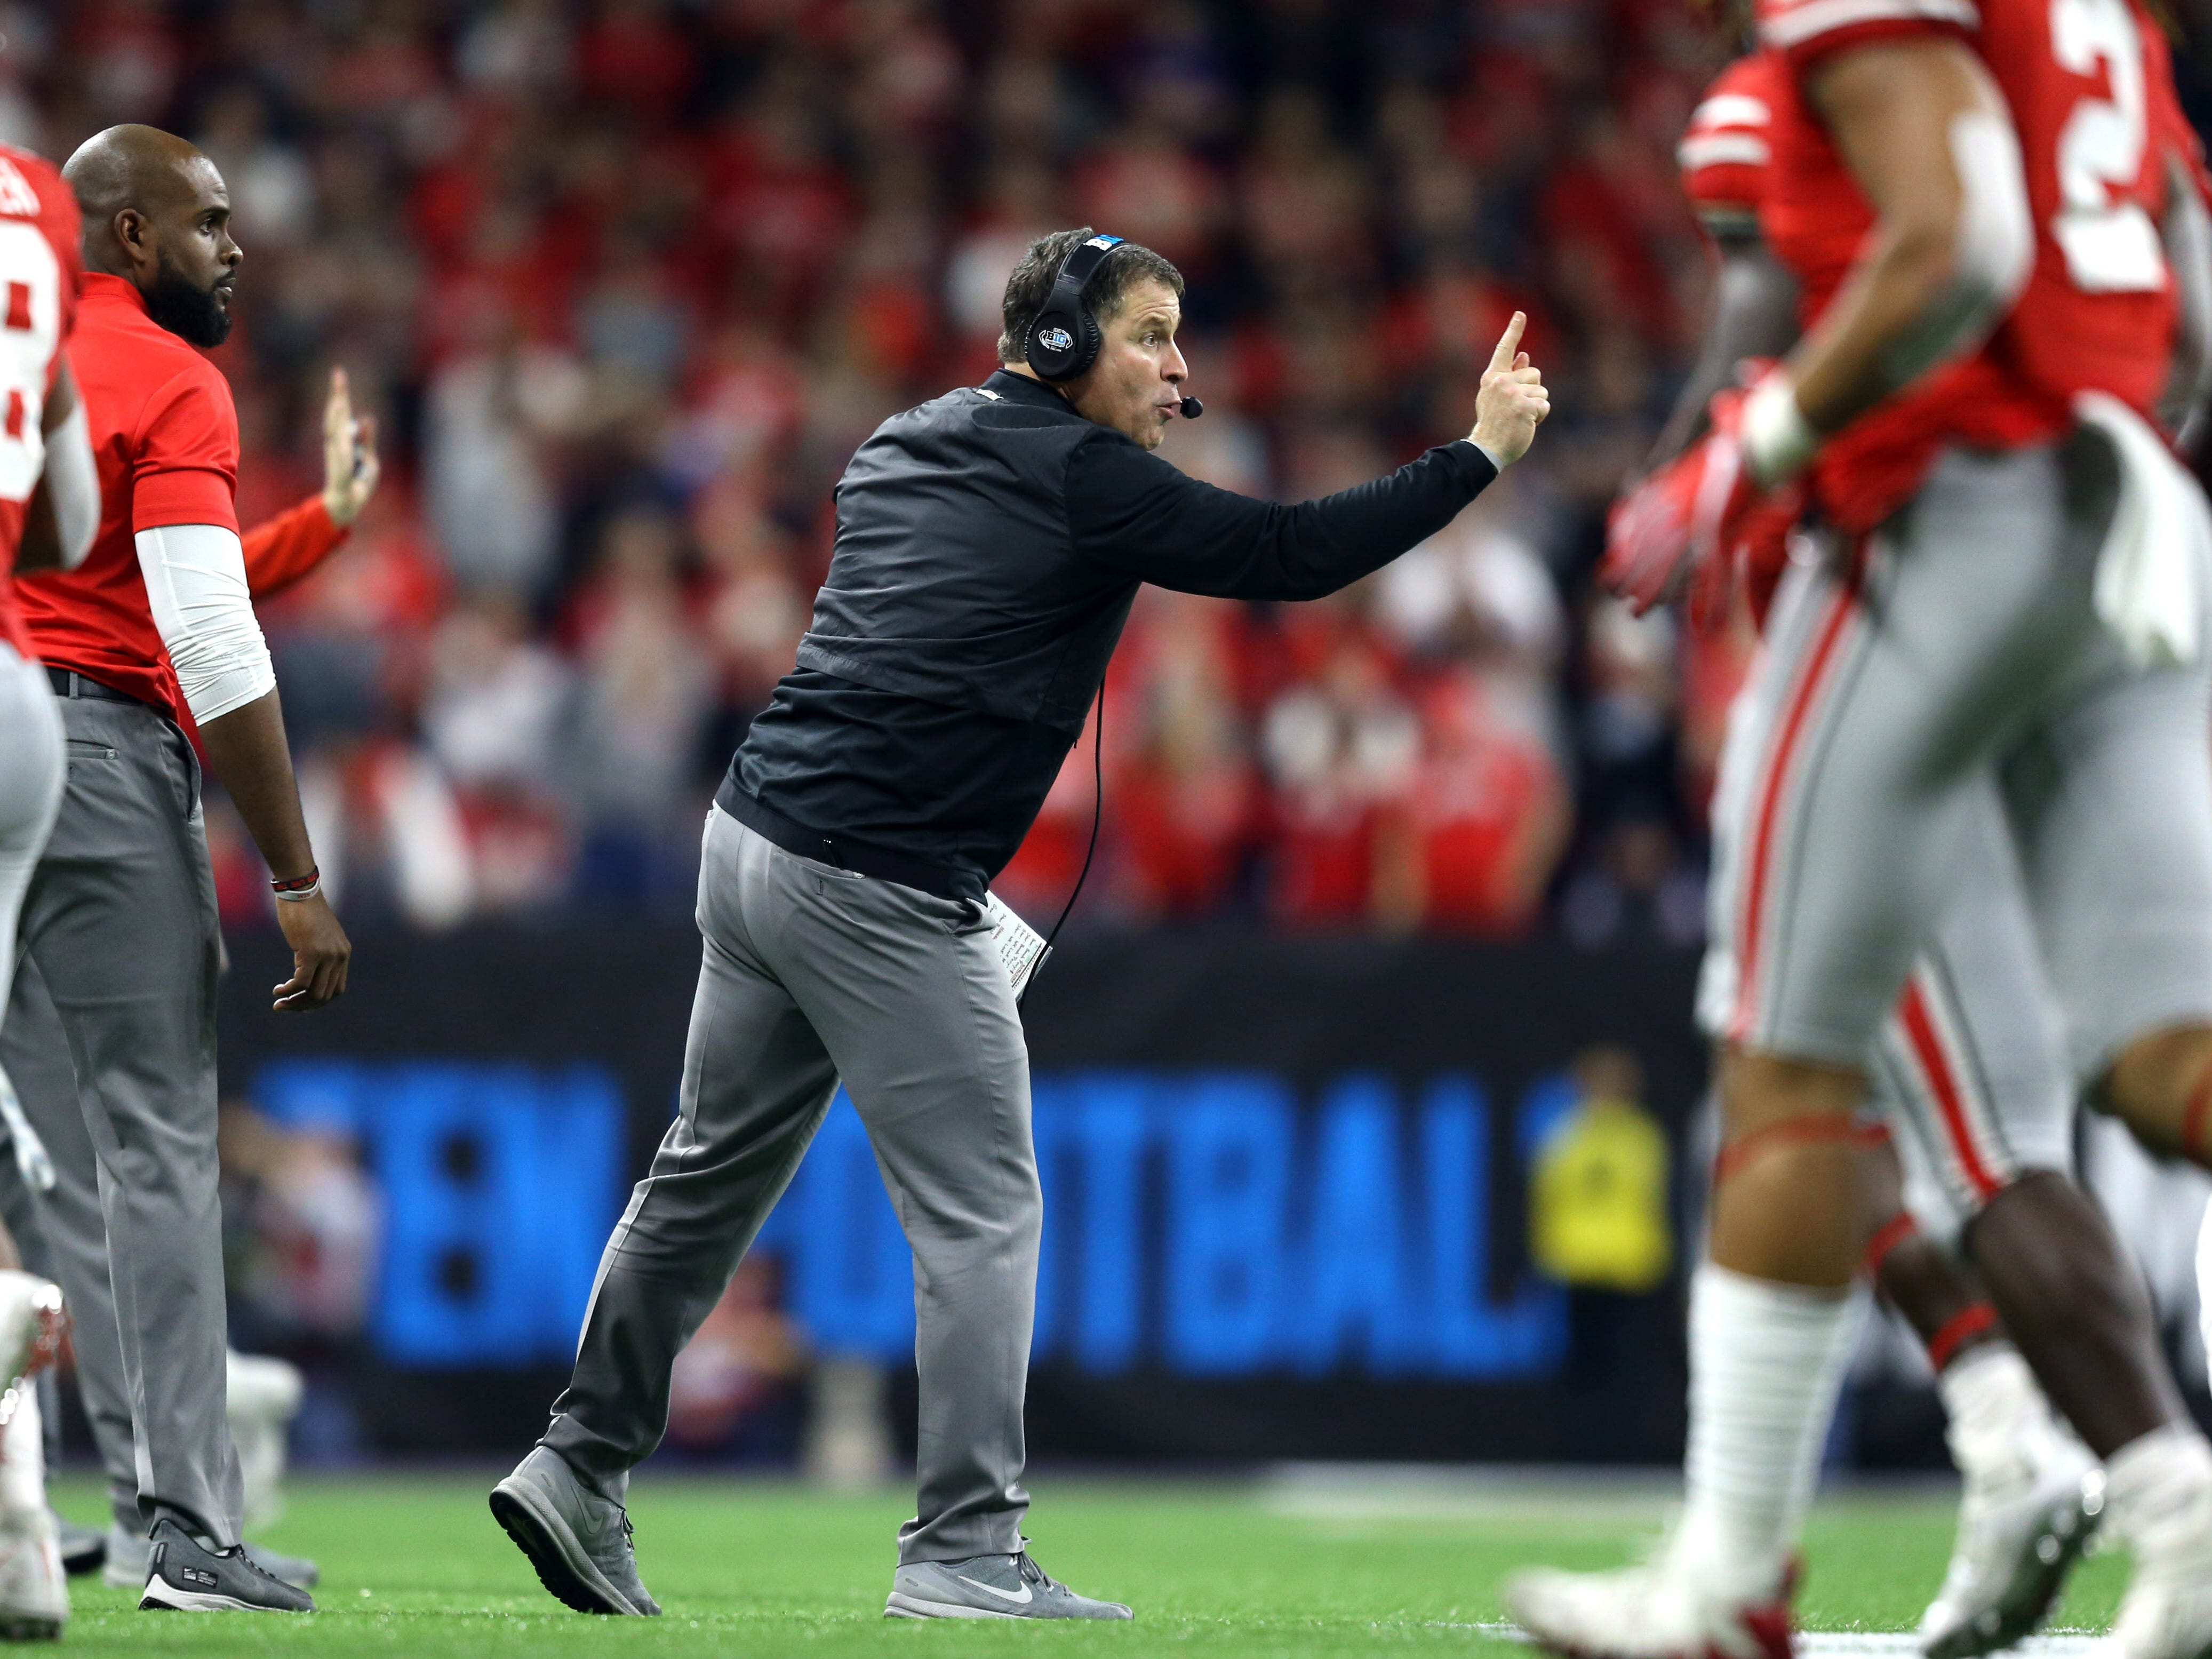 No. 6 (tie): Greg Schiano, Ohio State defensive coordinator: $1,500,000. Schiano was one of the biggest beneficiaries of Ohio State making a huge increase in its payroll for assistant coaches. Through the 2017 season, the school never had paid an assistant coach more than $750,000 in annual salary, according to data collected by USA TODAY Sports that dates from the 2009. Schiano -- a former college and NFL head coach who came close to getting Tennessee's top job last winter -- received an $800,000 raise.